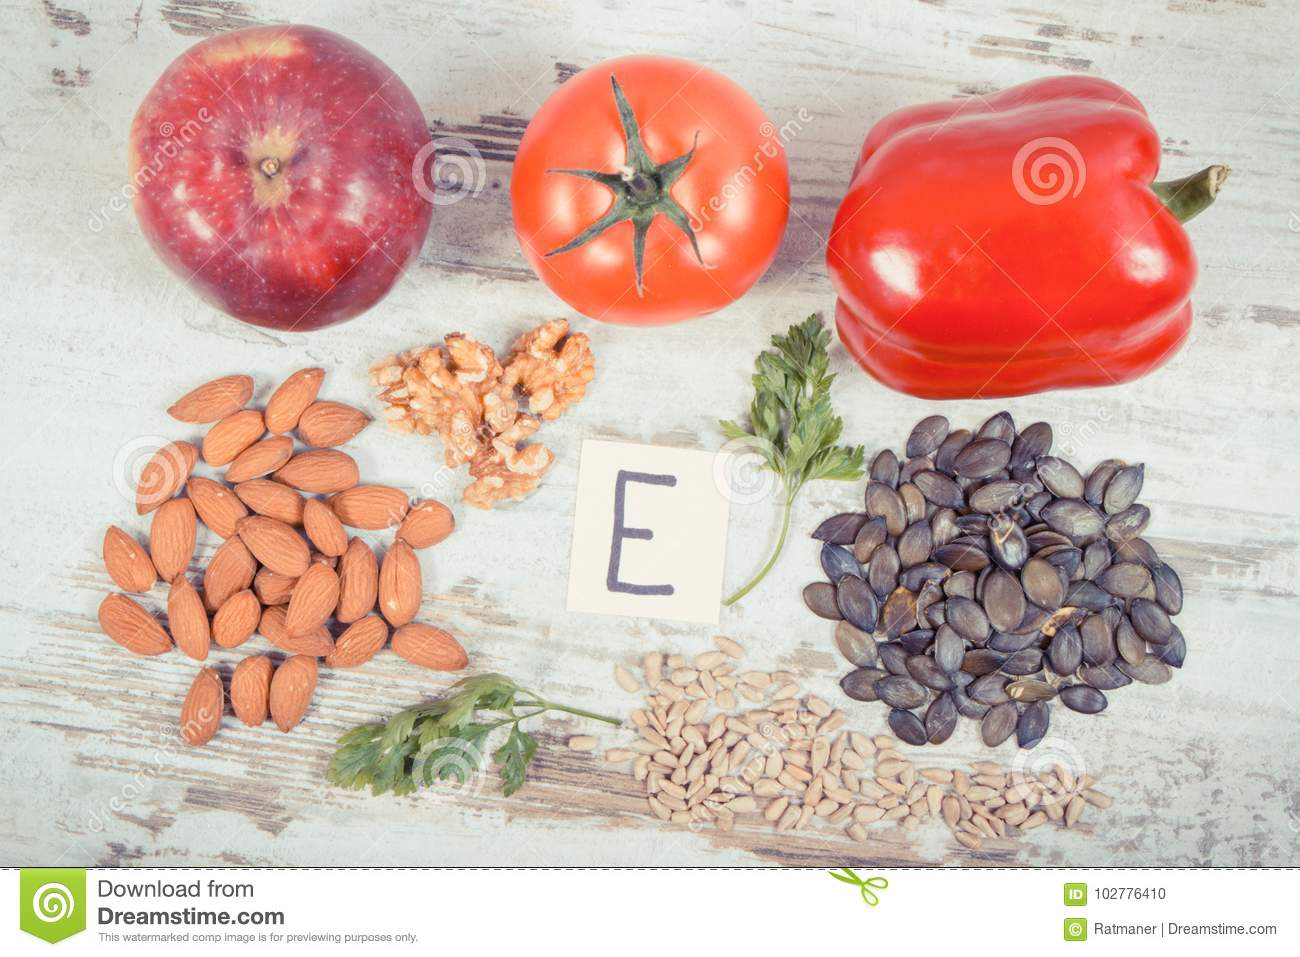 Vitamin E and products containing: a selection of sites